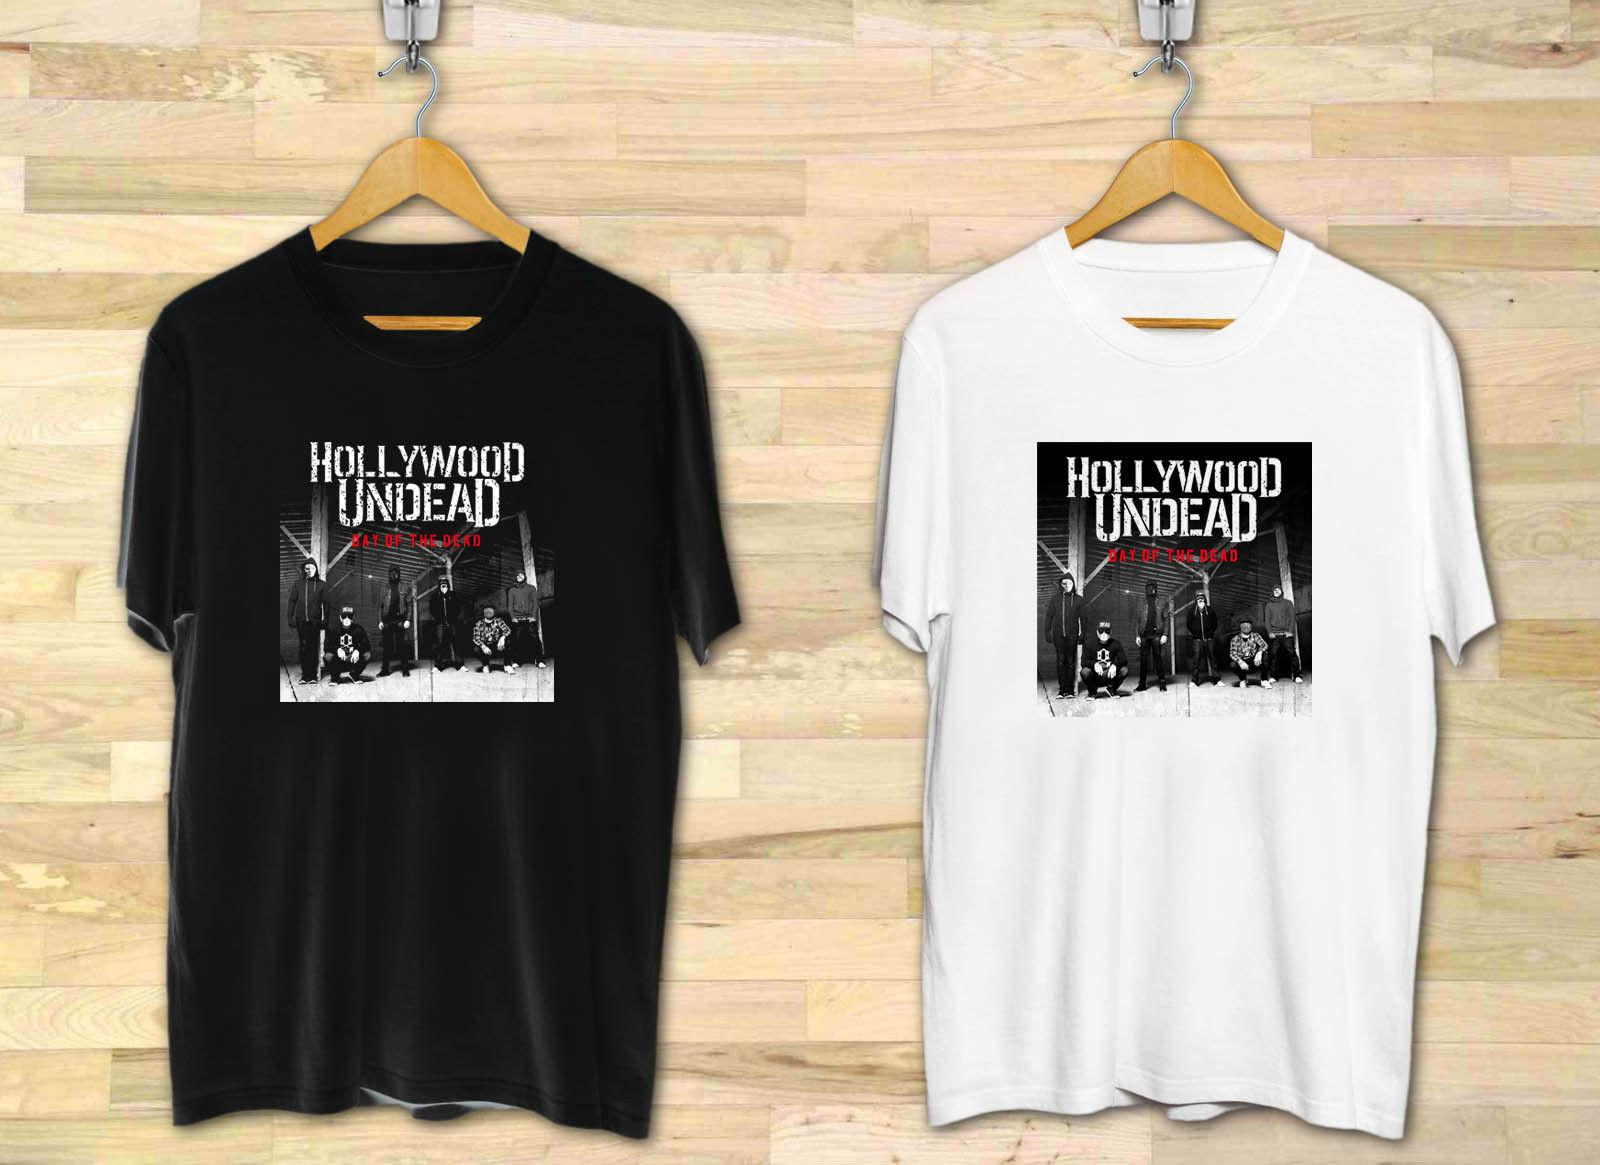 c6cc8fc5f0182 Hollywood Undead HU Day Of The Dead Men S Black White T Shirt XS To 3XL  Funny Unisex Casual Top Offensive Tee Shirts T Shirt A Day From  Shirtquarters